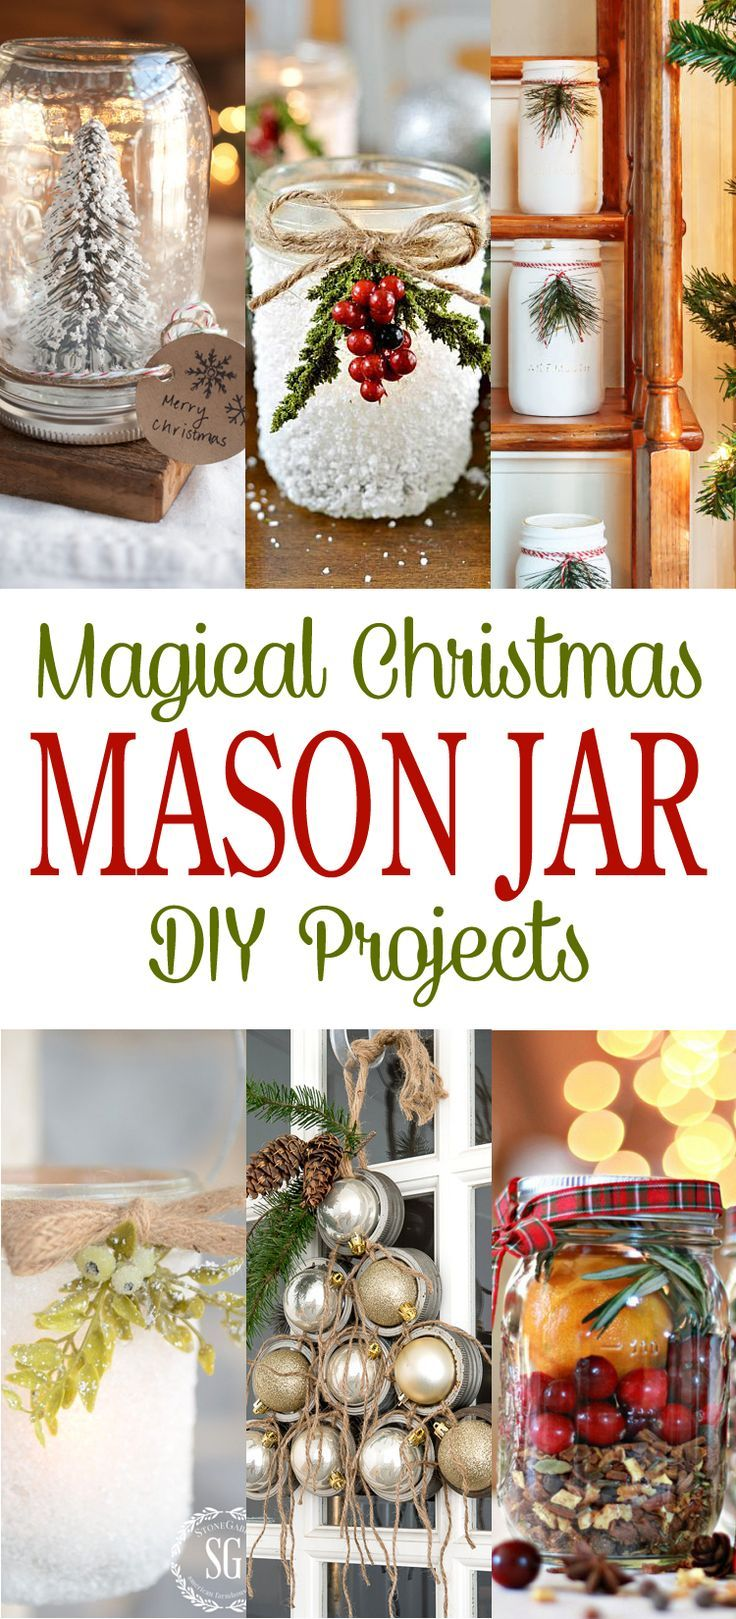 Magical Christmas Mason Jar DIY Projects - The Cottage Market